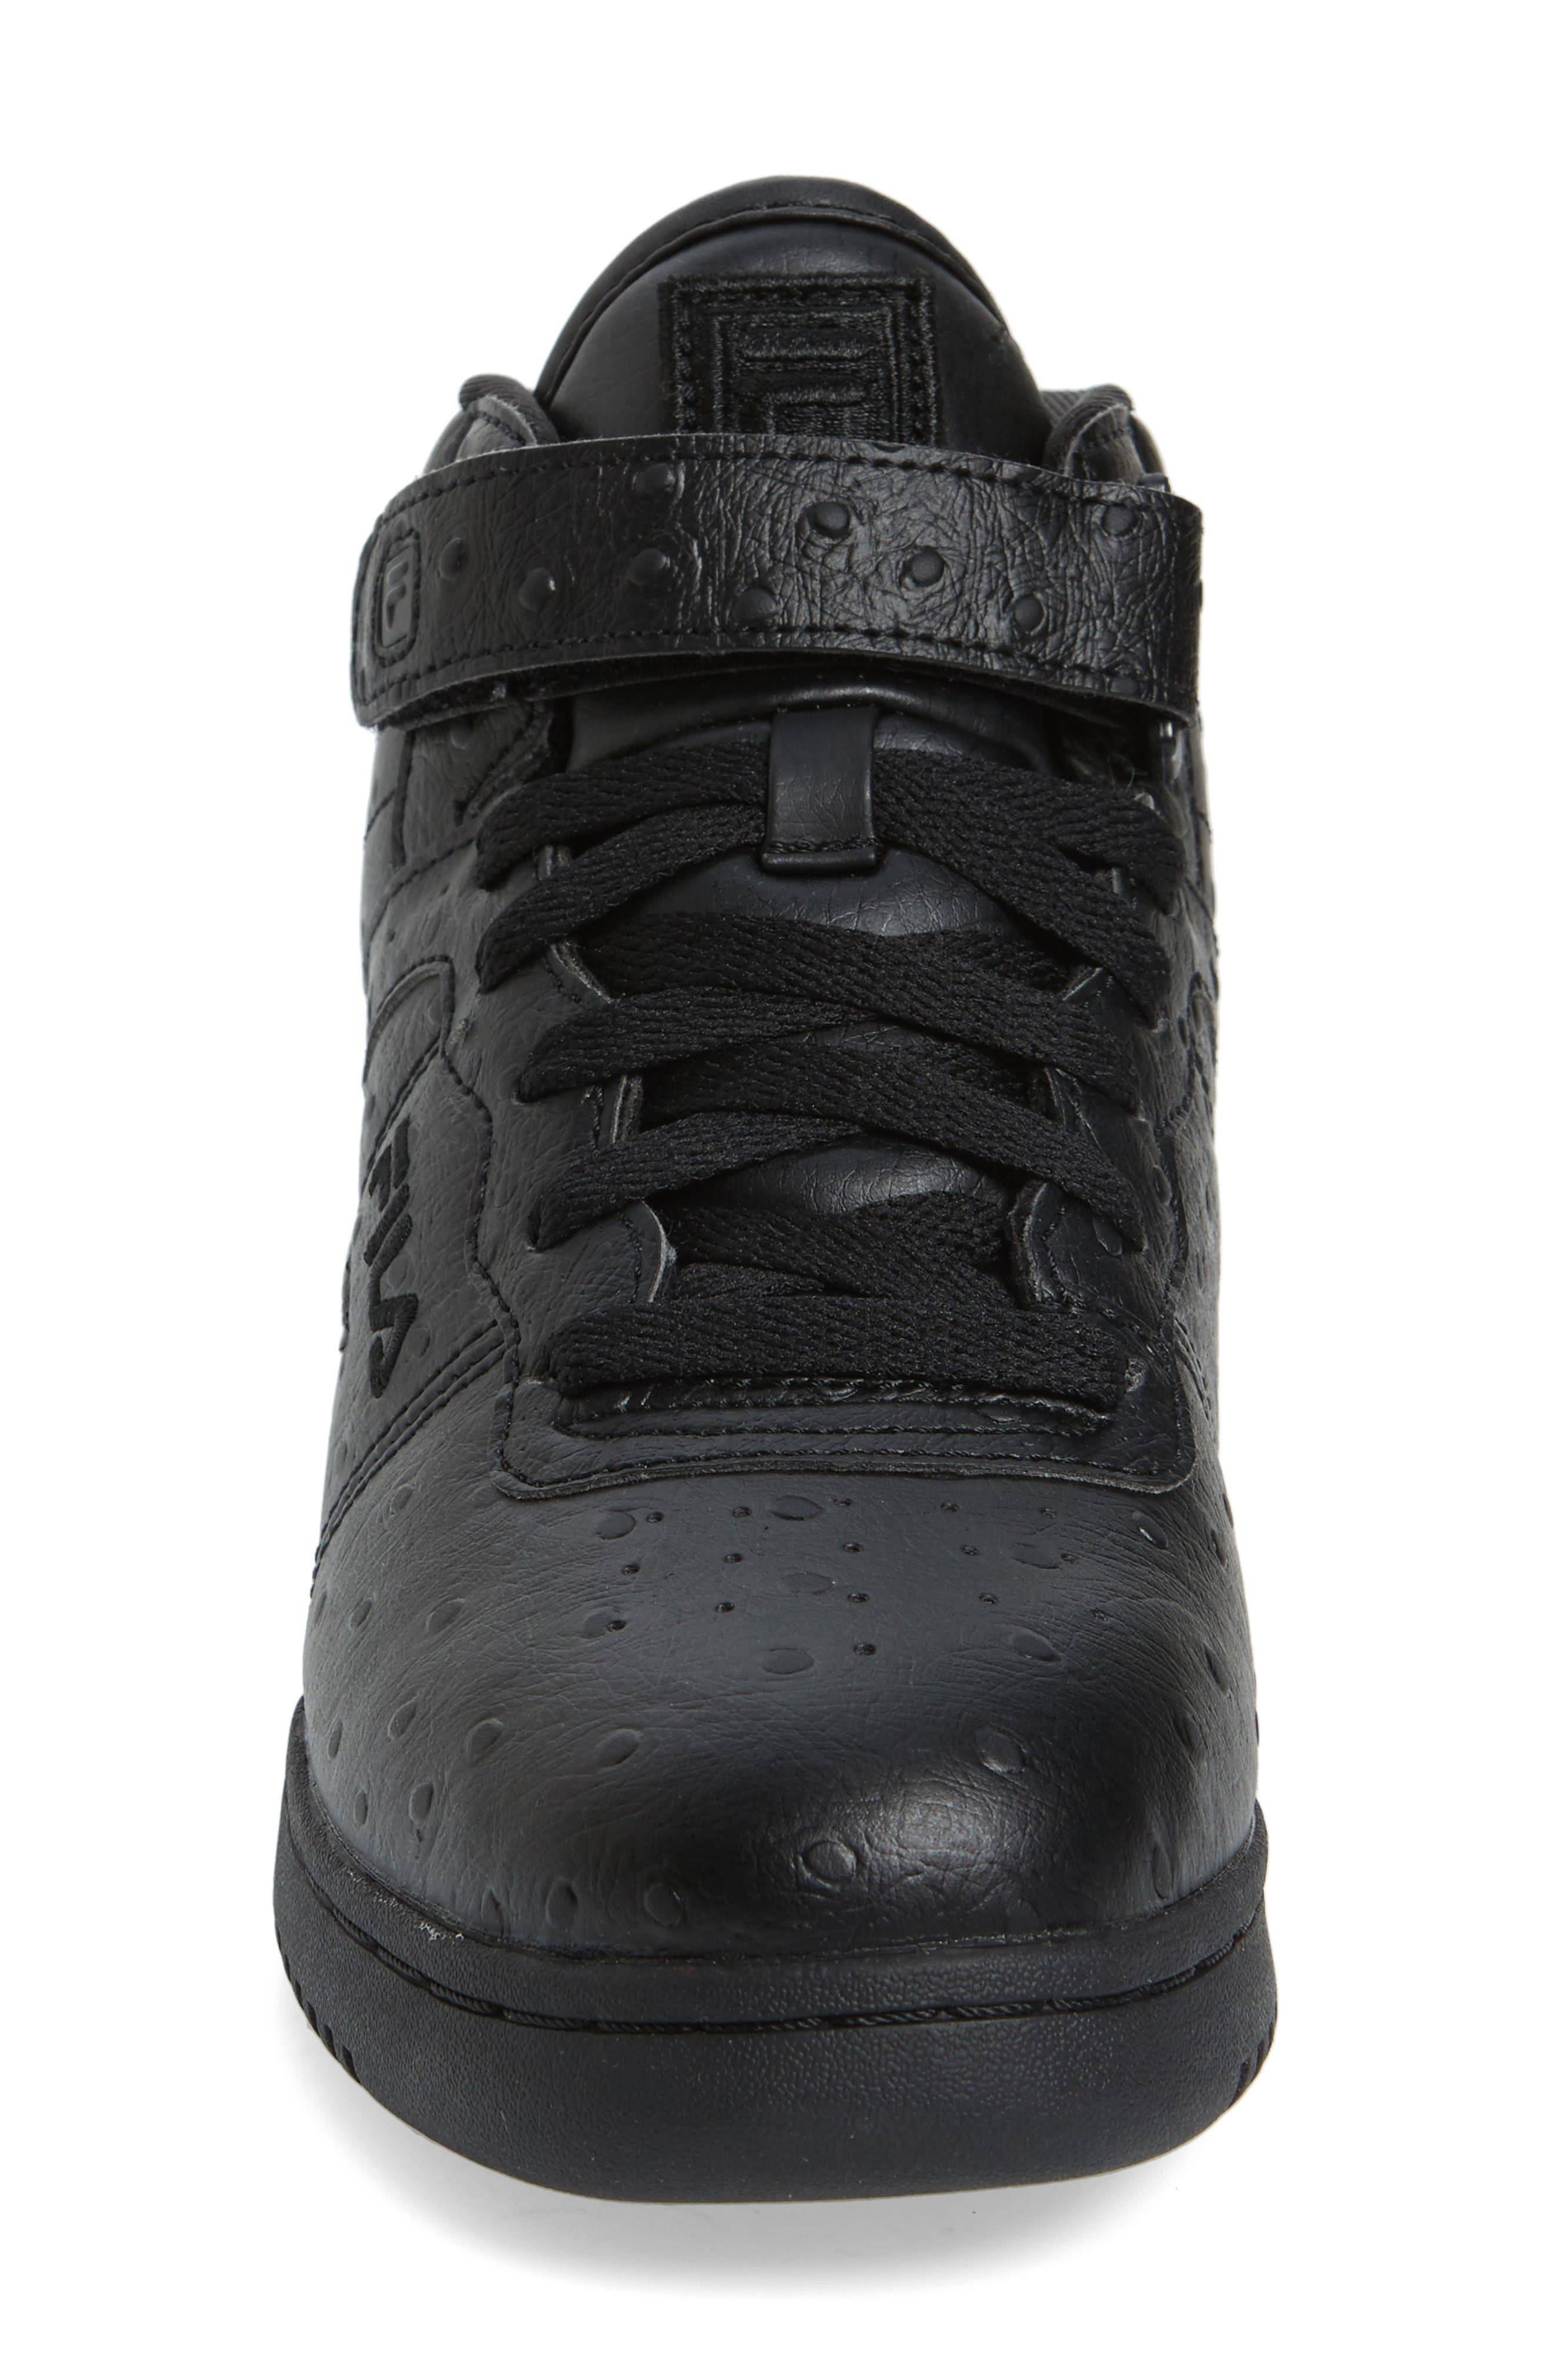 F-13 Ostrich Embossed High Top Sneaker,                             Alternate thumbnail 3, color,                             Triple Black